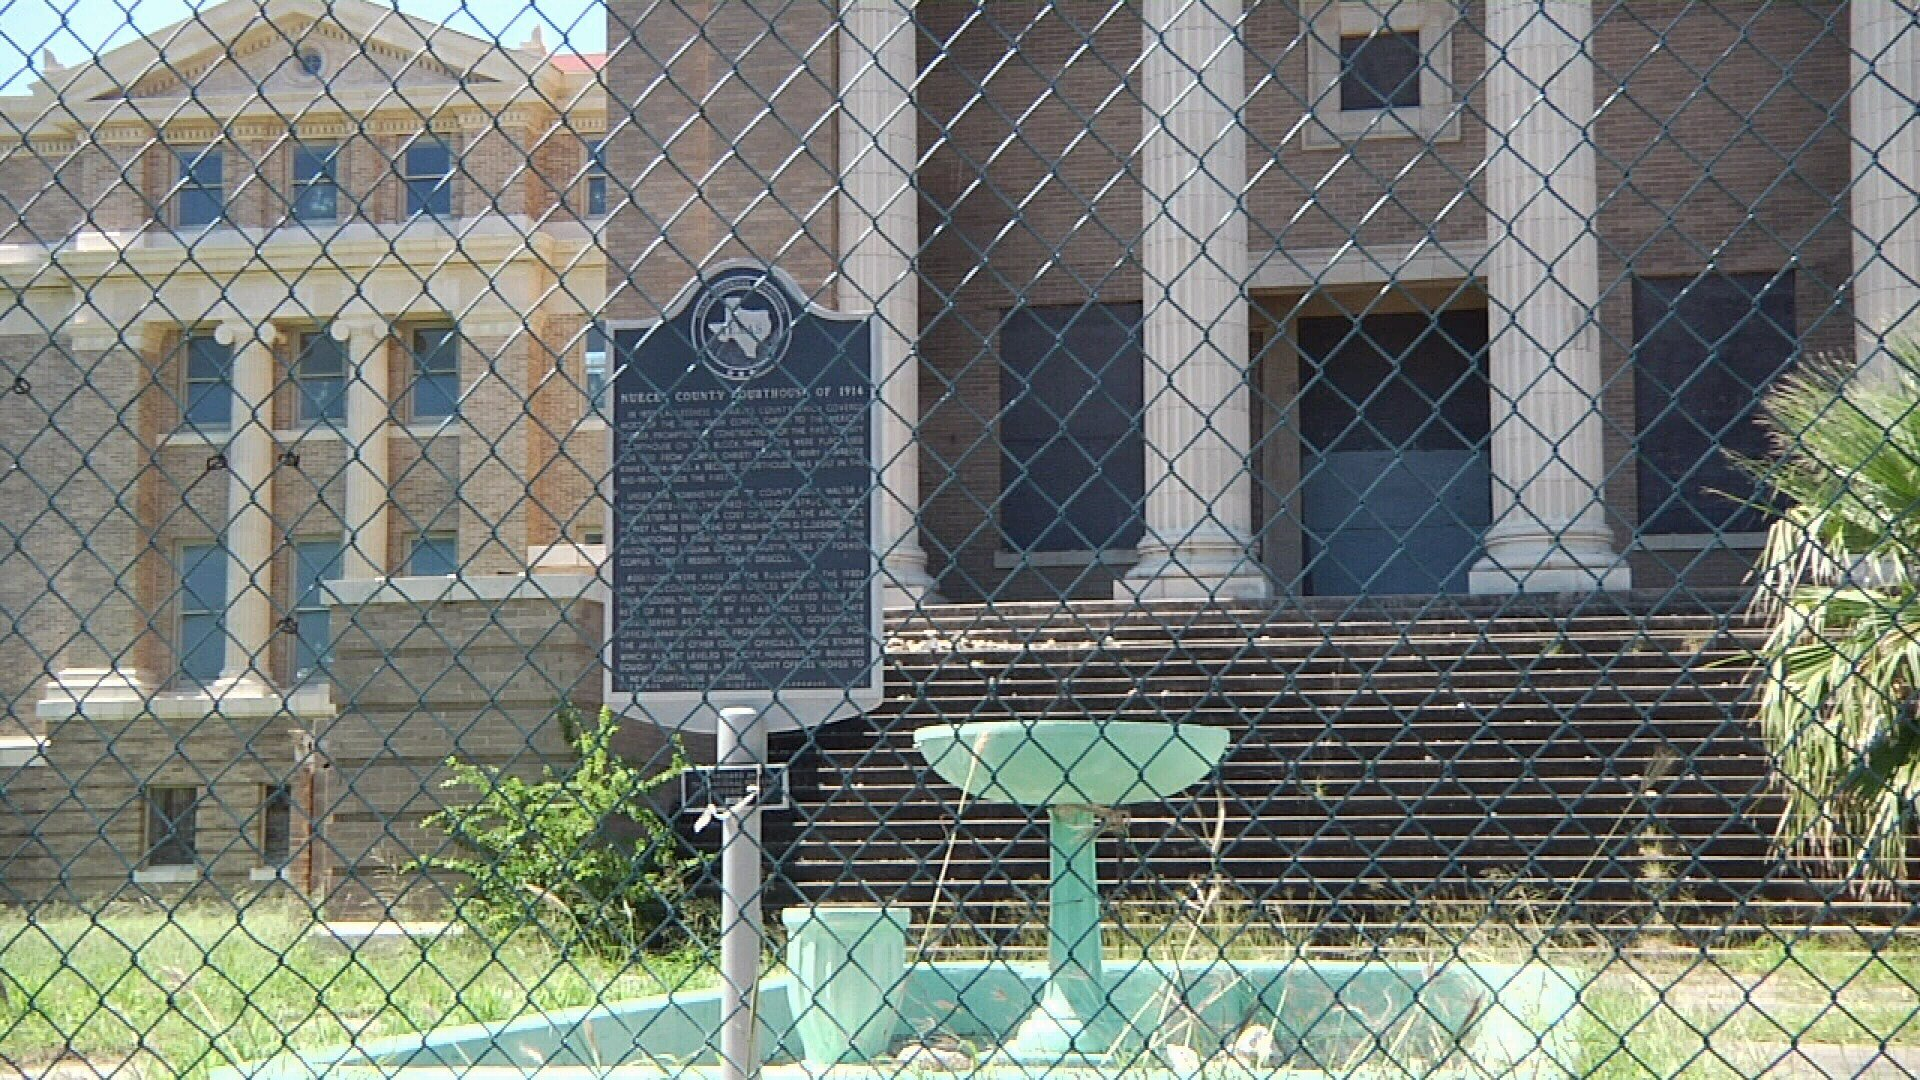 The Texas Historical Commission has deed restrictions on the property that prohibit it from being demolished until 2027.